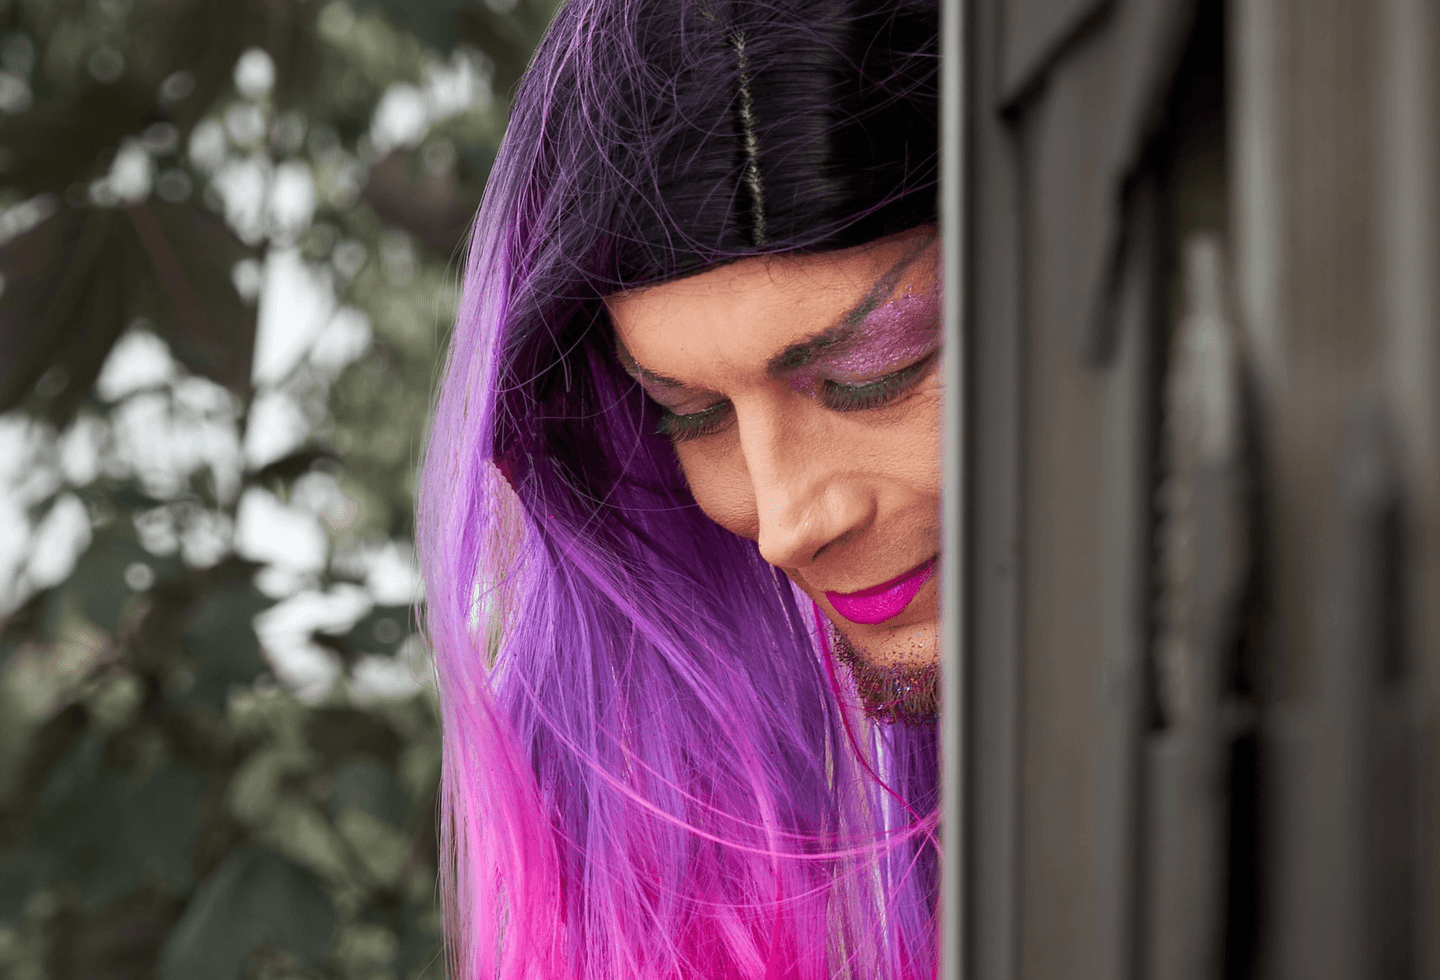 Drag queen with purple hair looking down